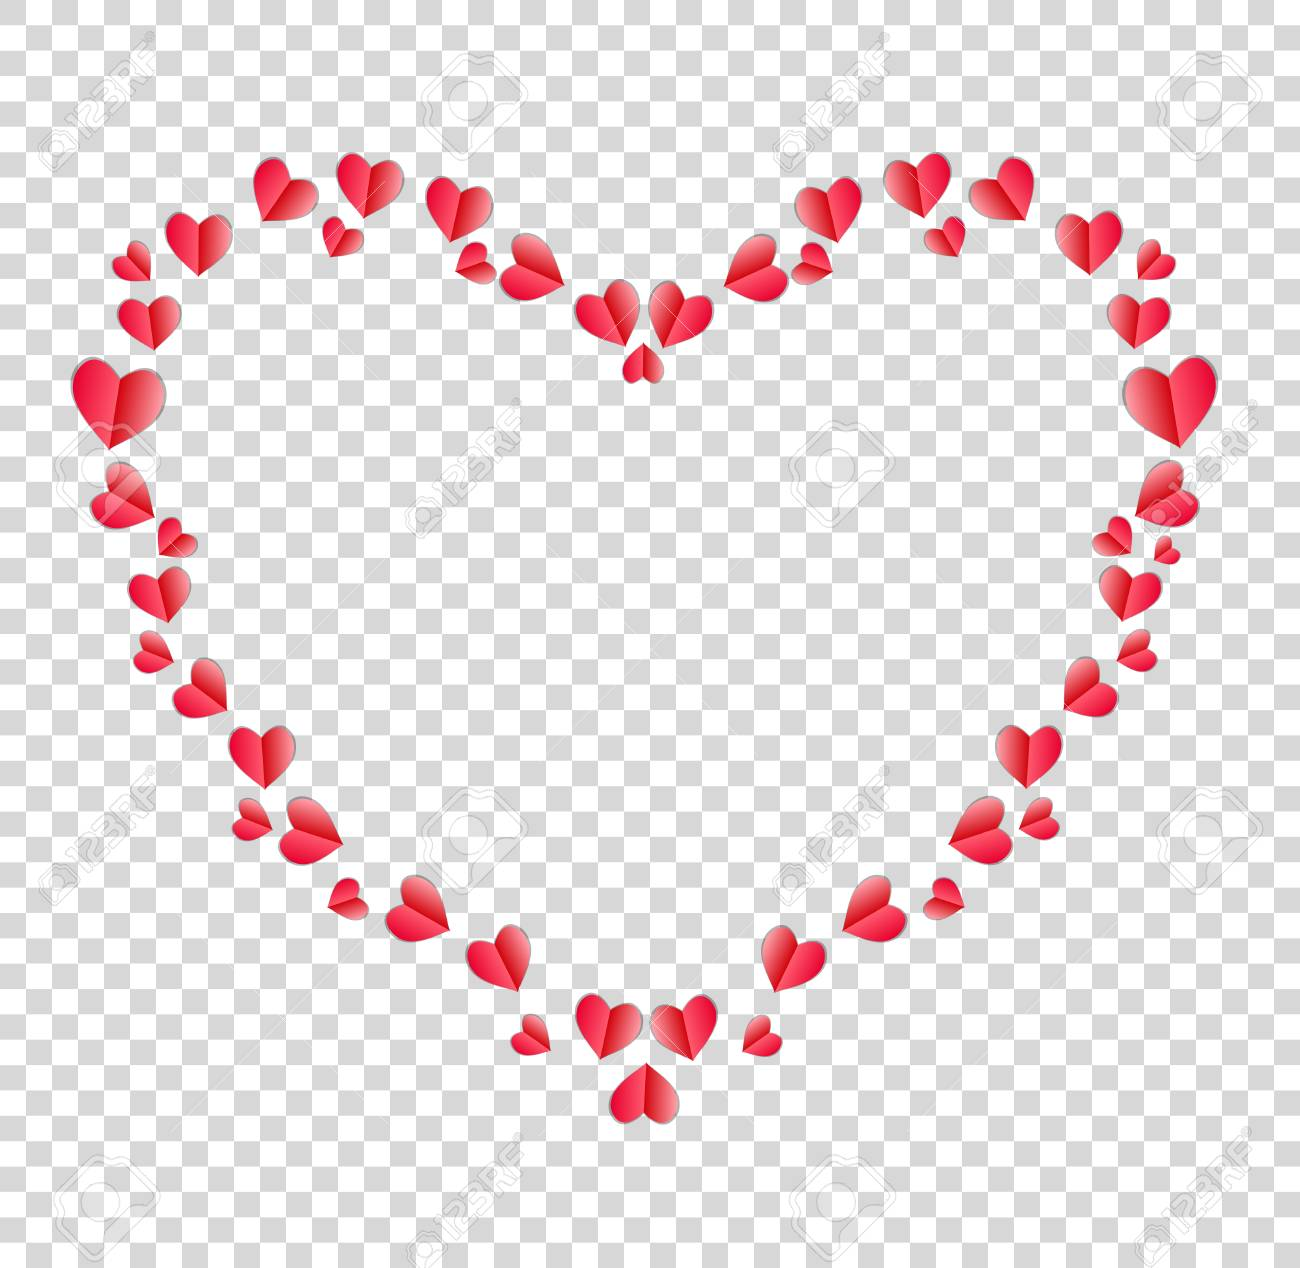 Heart Outline Transparent Background - Heart Border Made Of Red Folded Paper Hearts With Space For Text ...